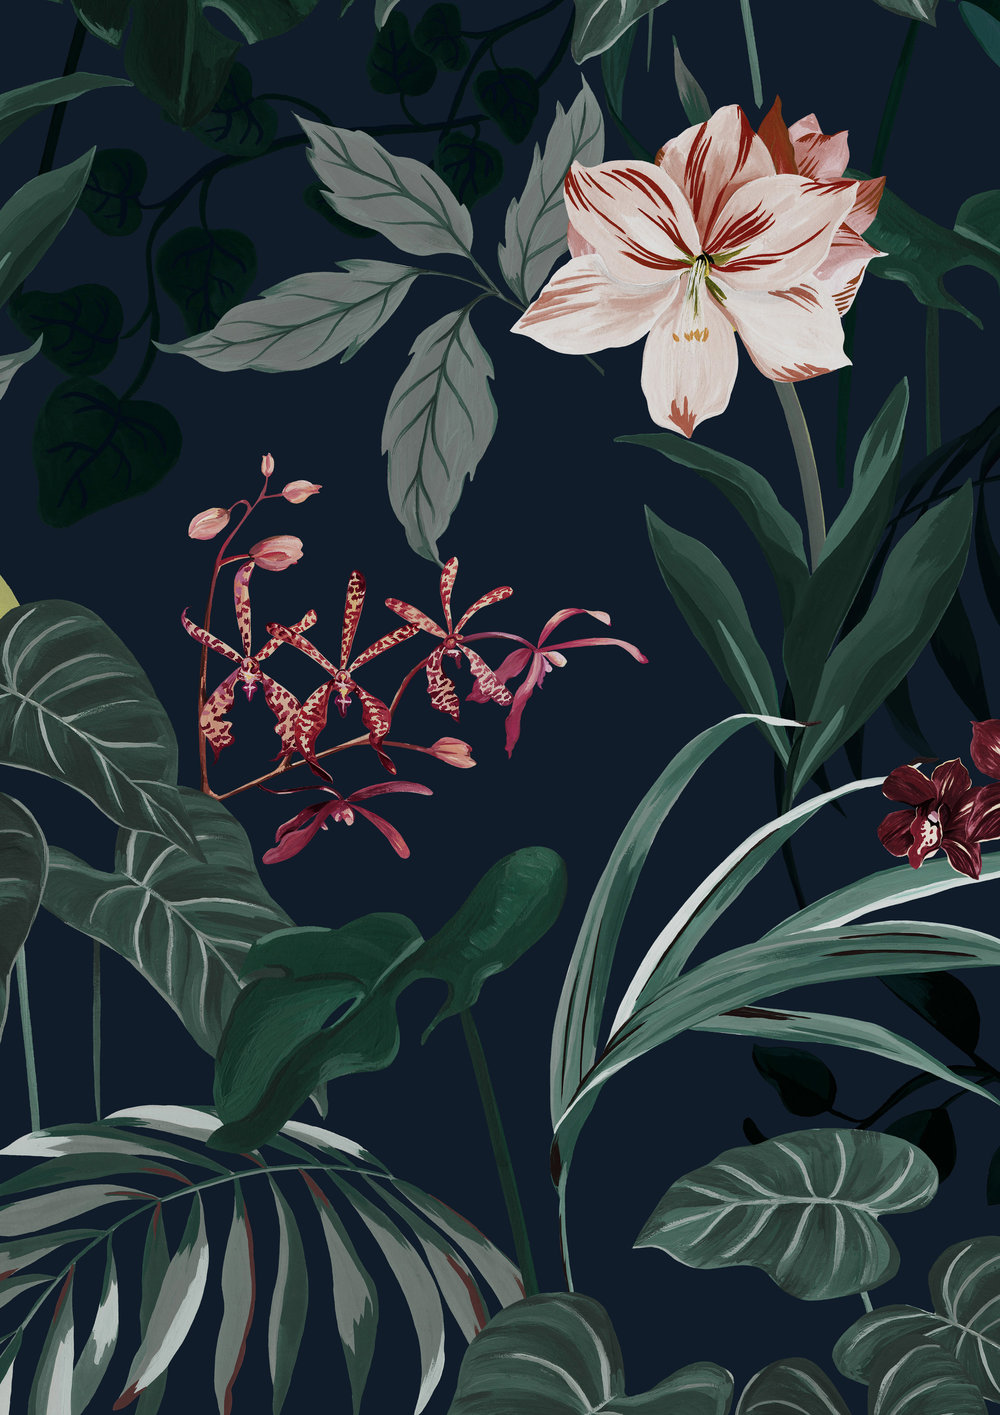 Botanical-Wallpaper-BellaGomez-2-.jpg